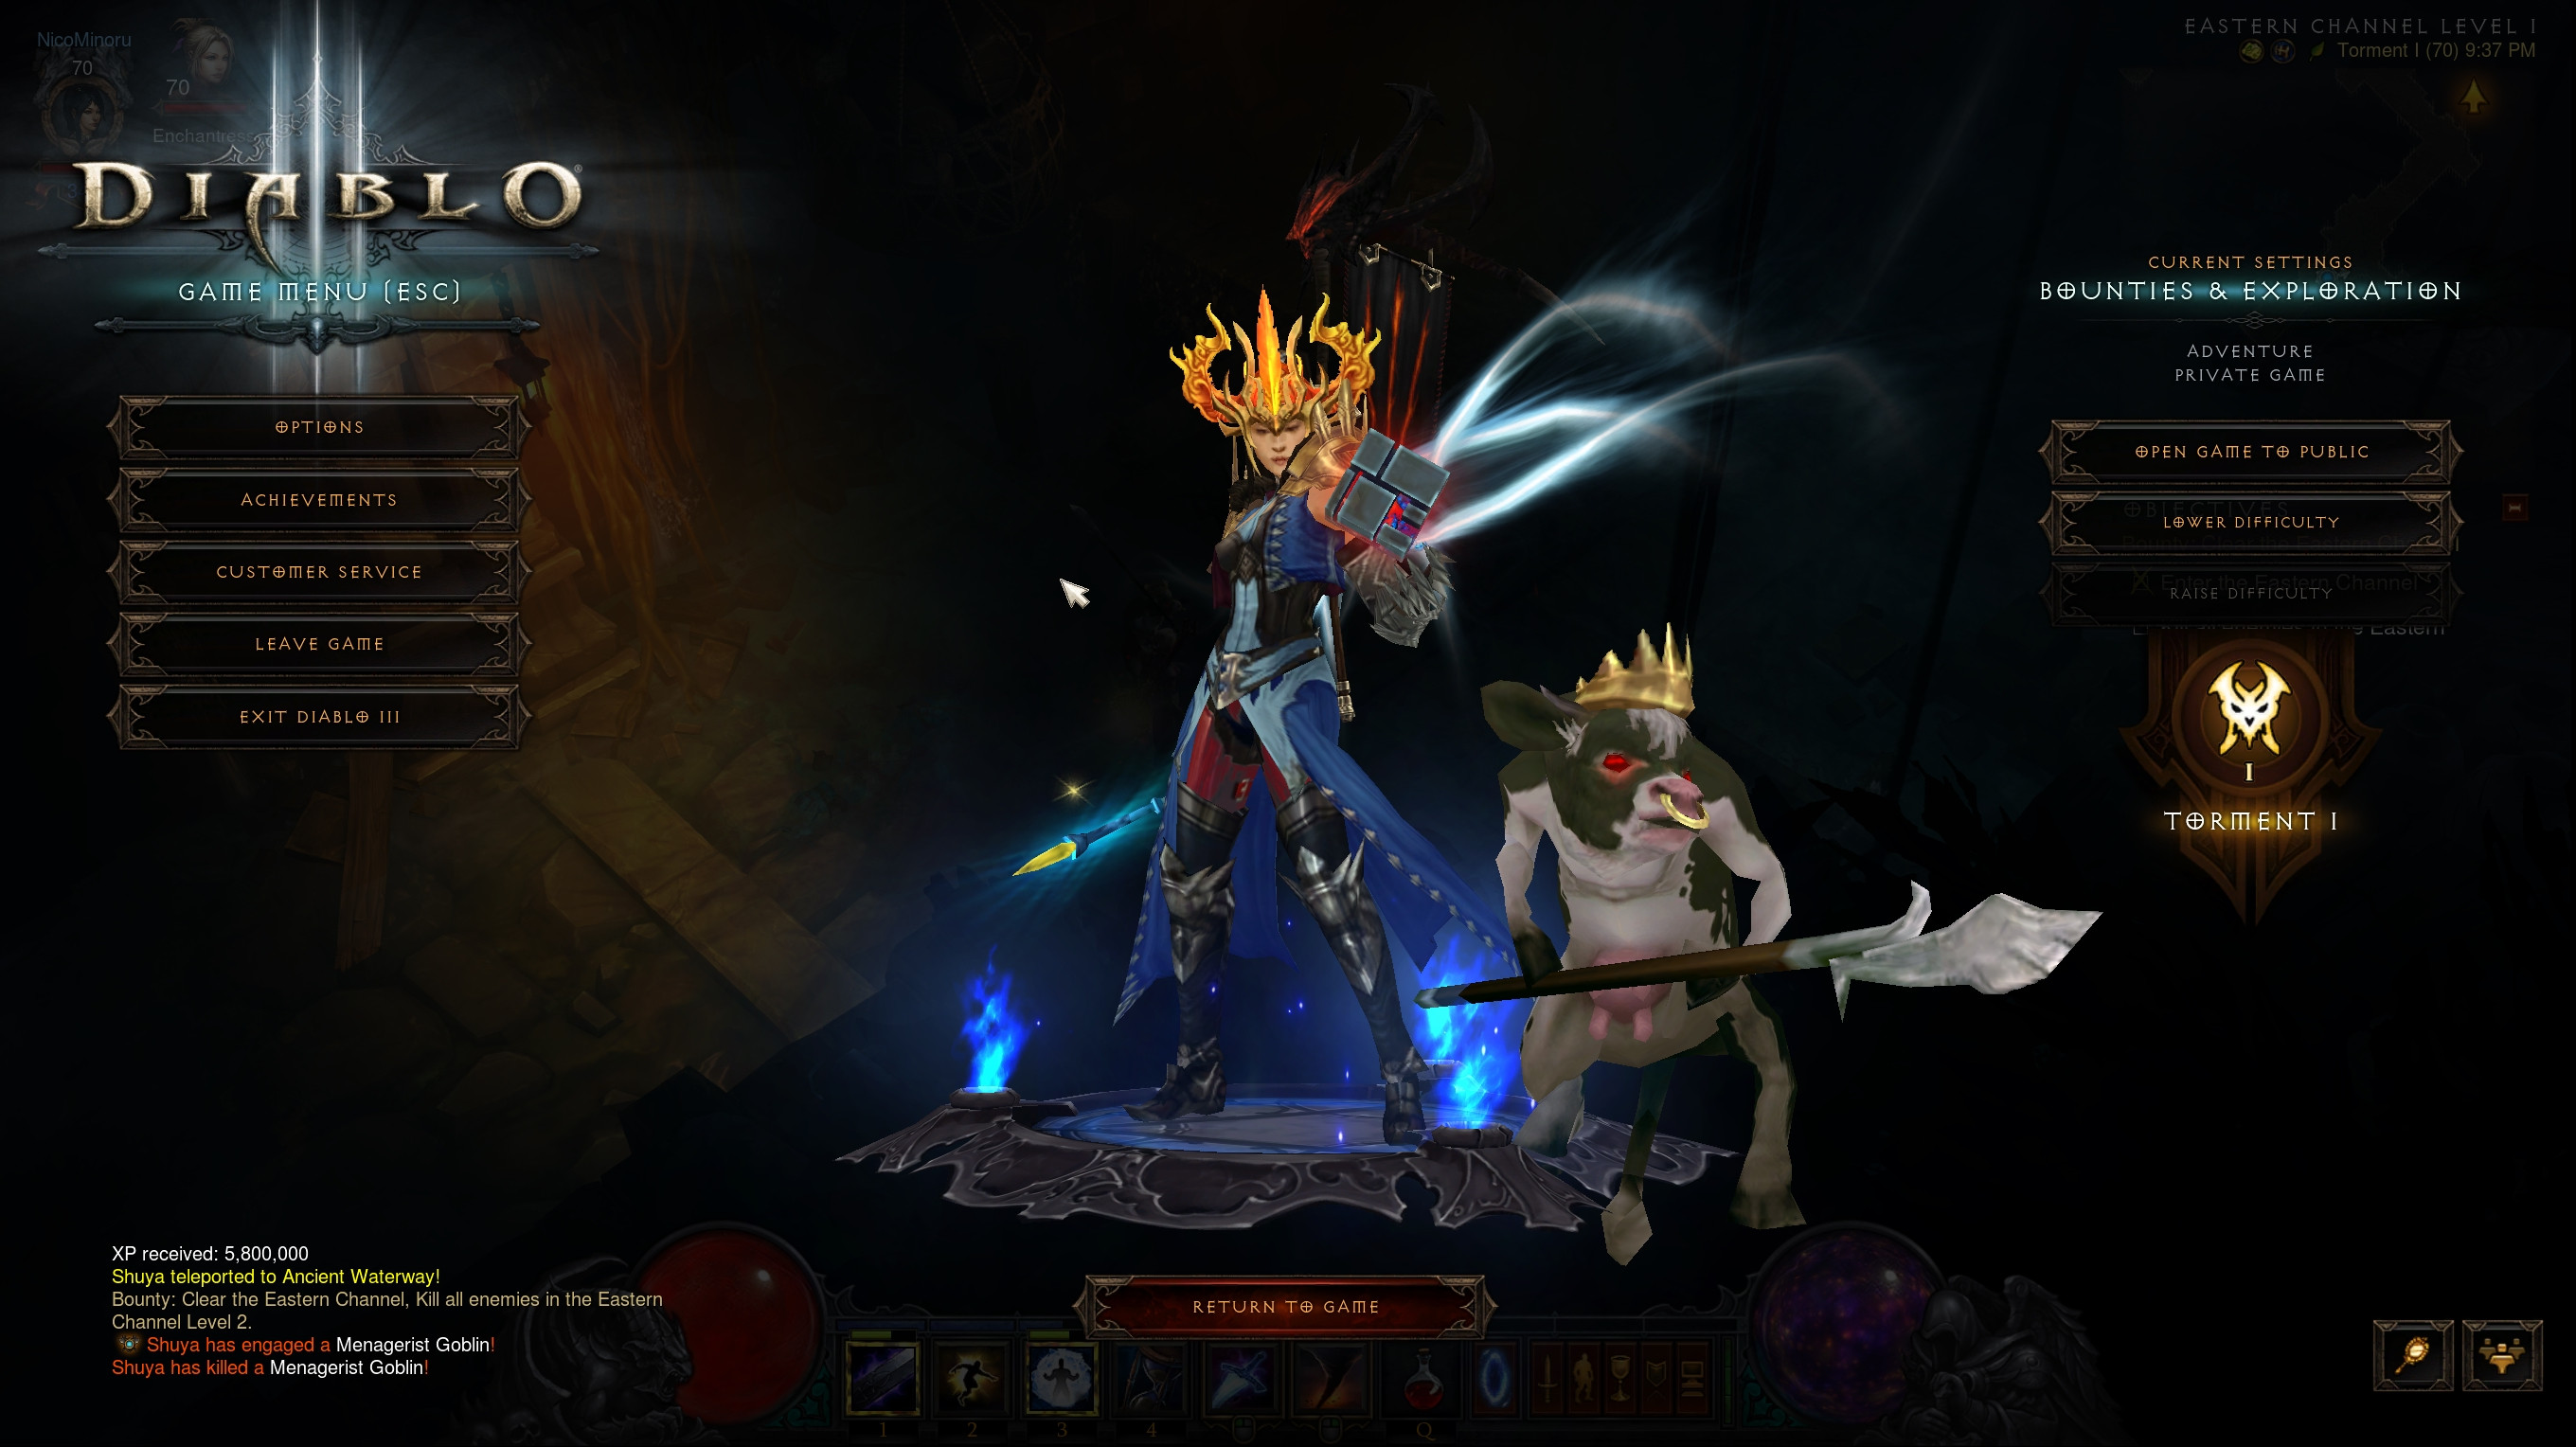 Diablo 3 Patch 241 New Virtual Pets